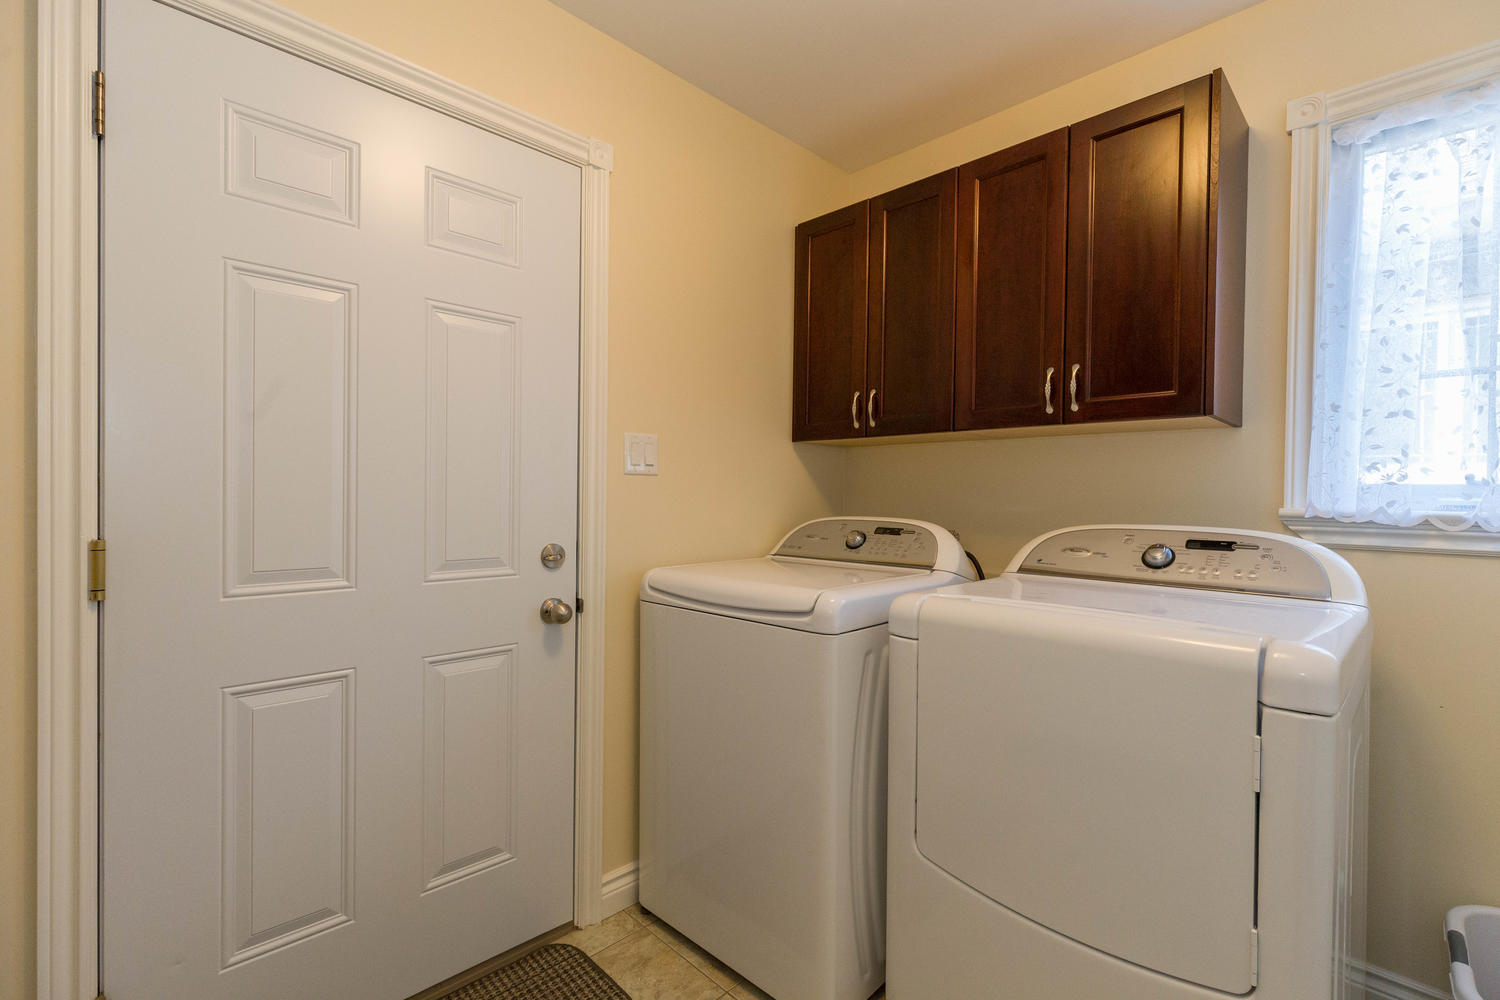 Located in the mud room between the kitchen and the garage.  Great sized laundry room.